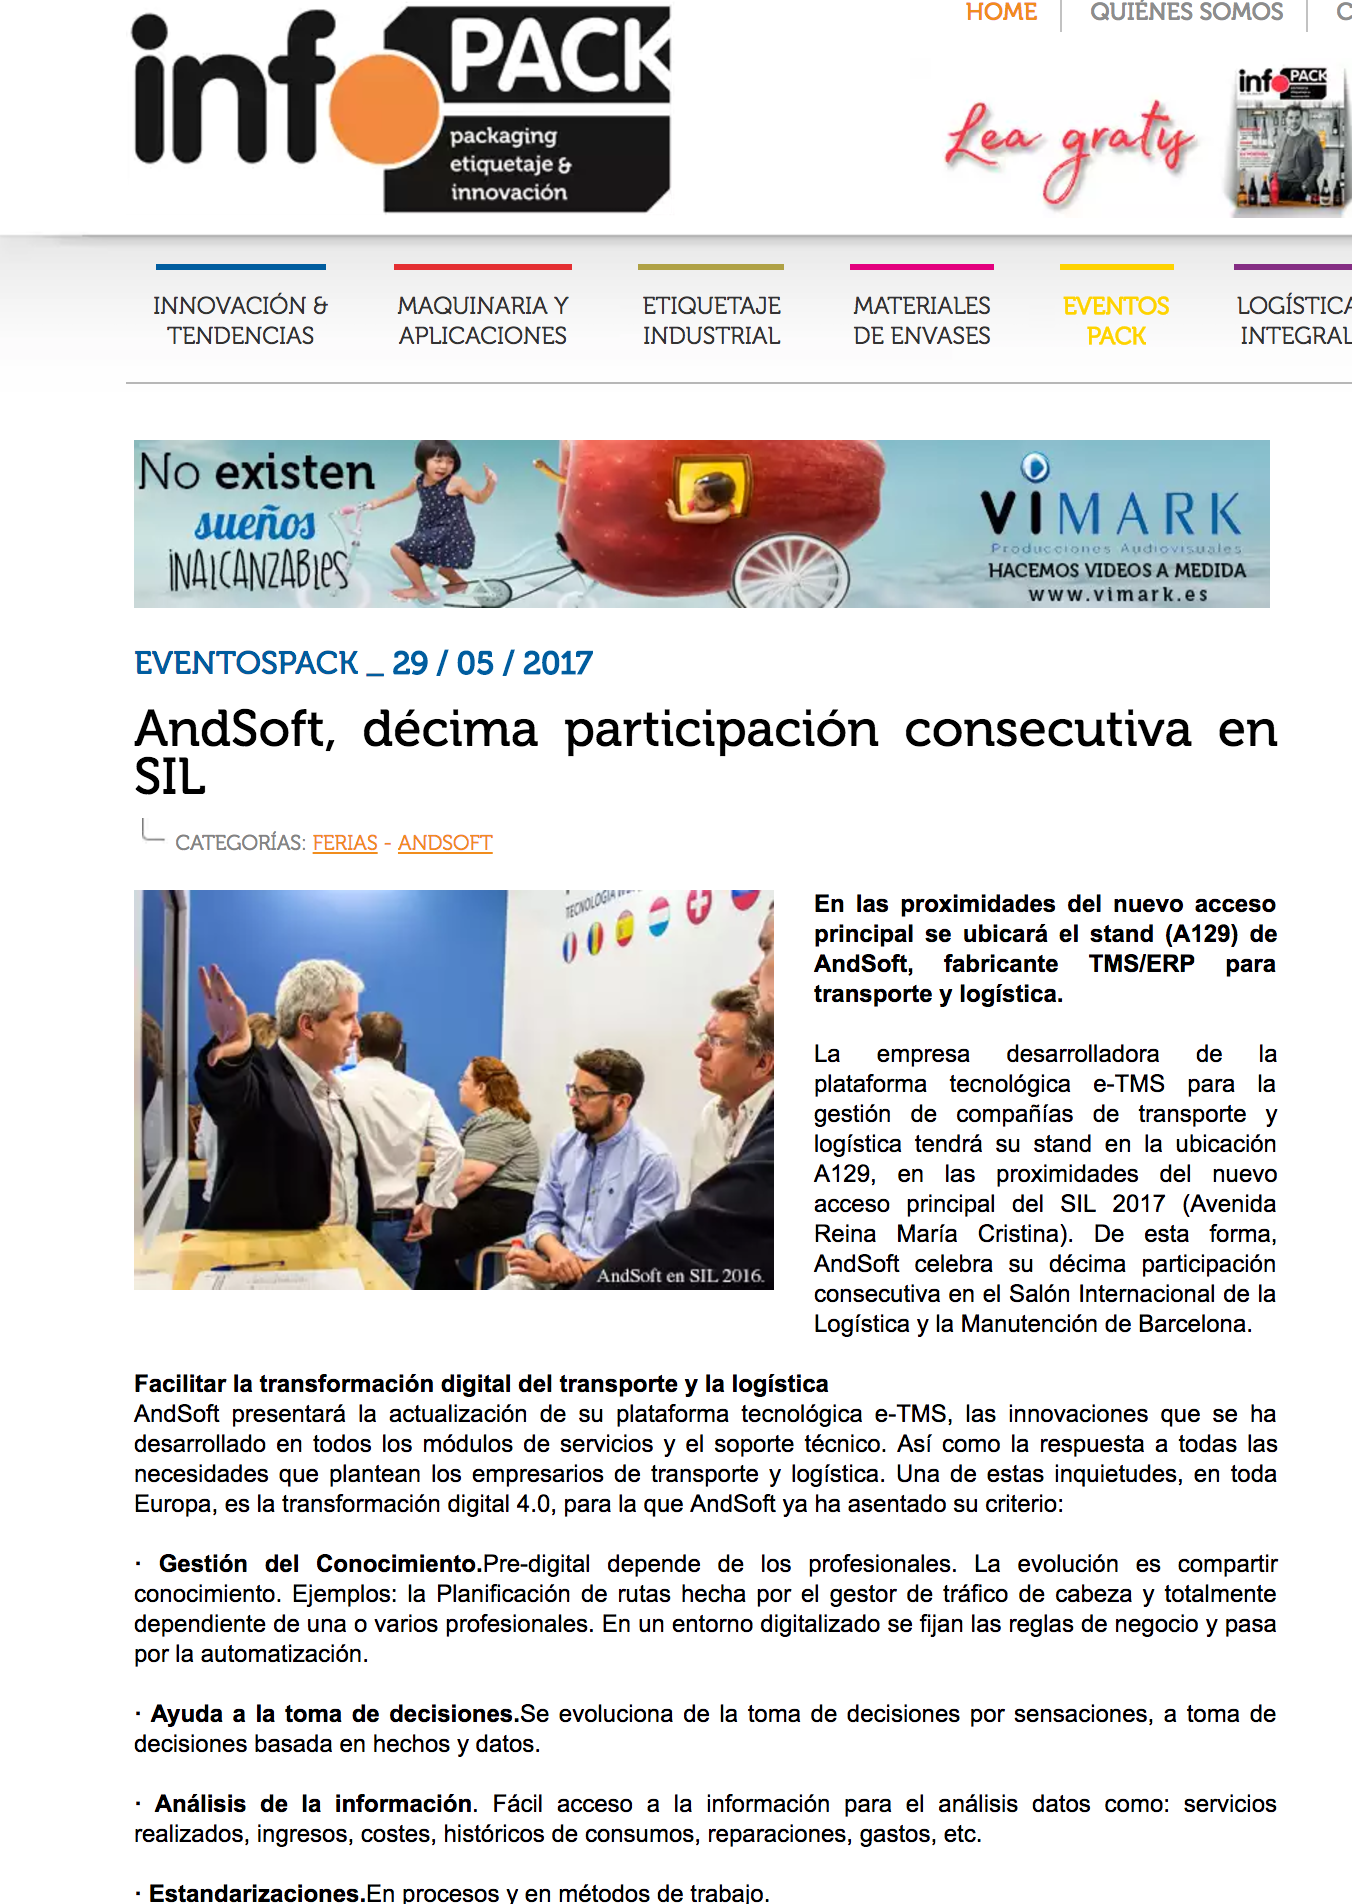 AndSoft Noticia en InfoPack